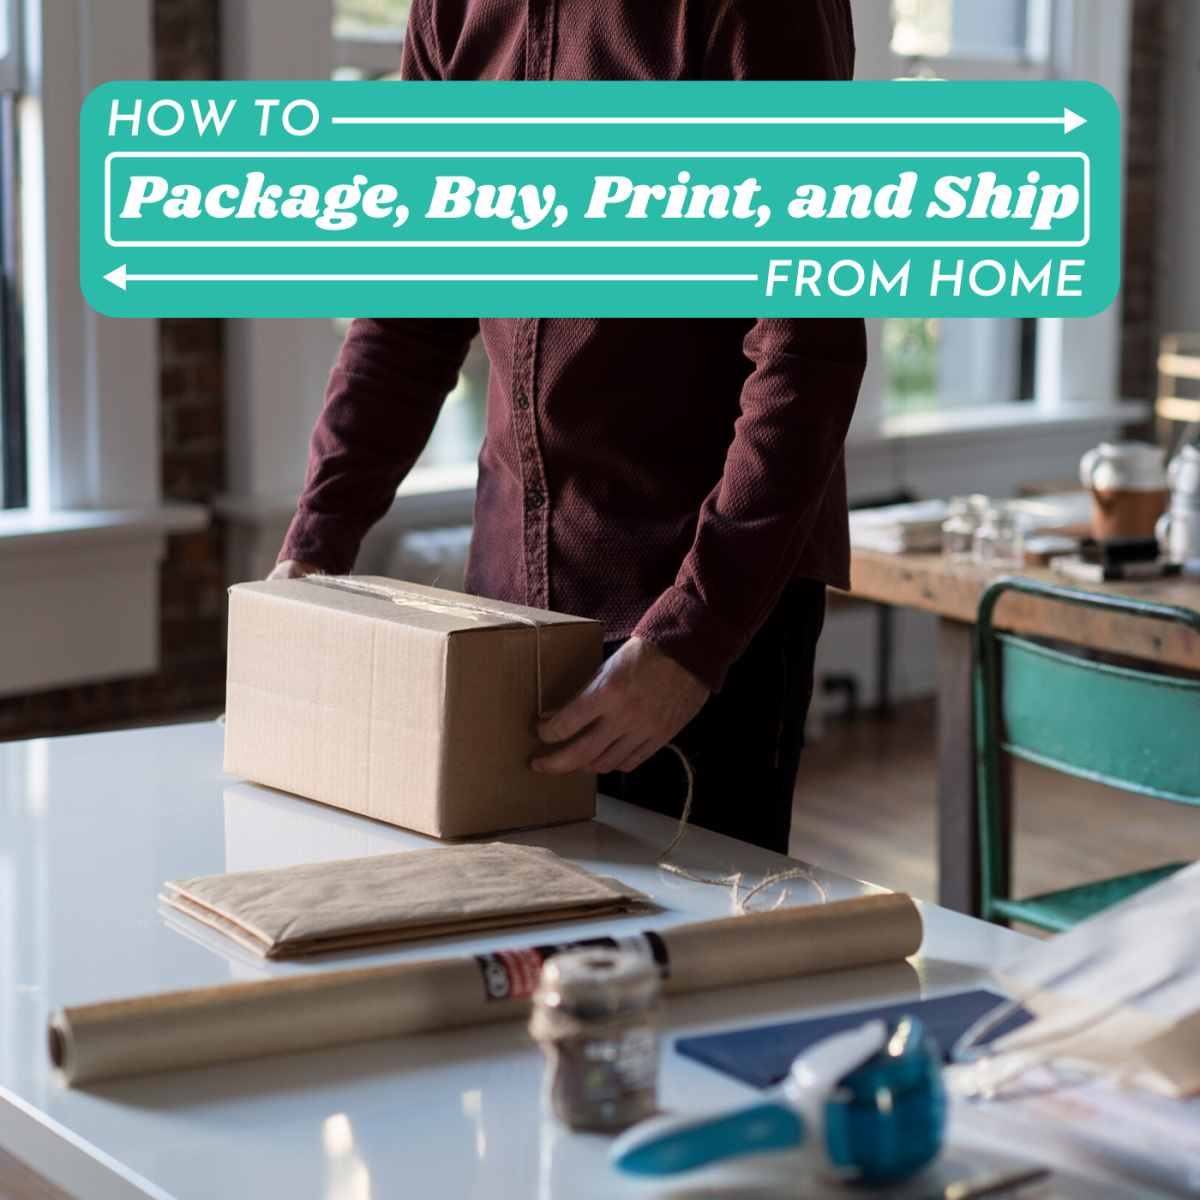 Did you know you don't need to subscribe to a paid service like ShipStation to print postage and send packages from home?